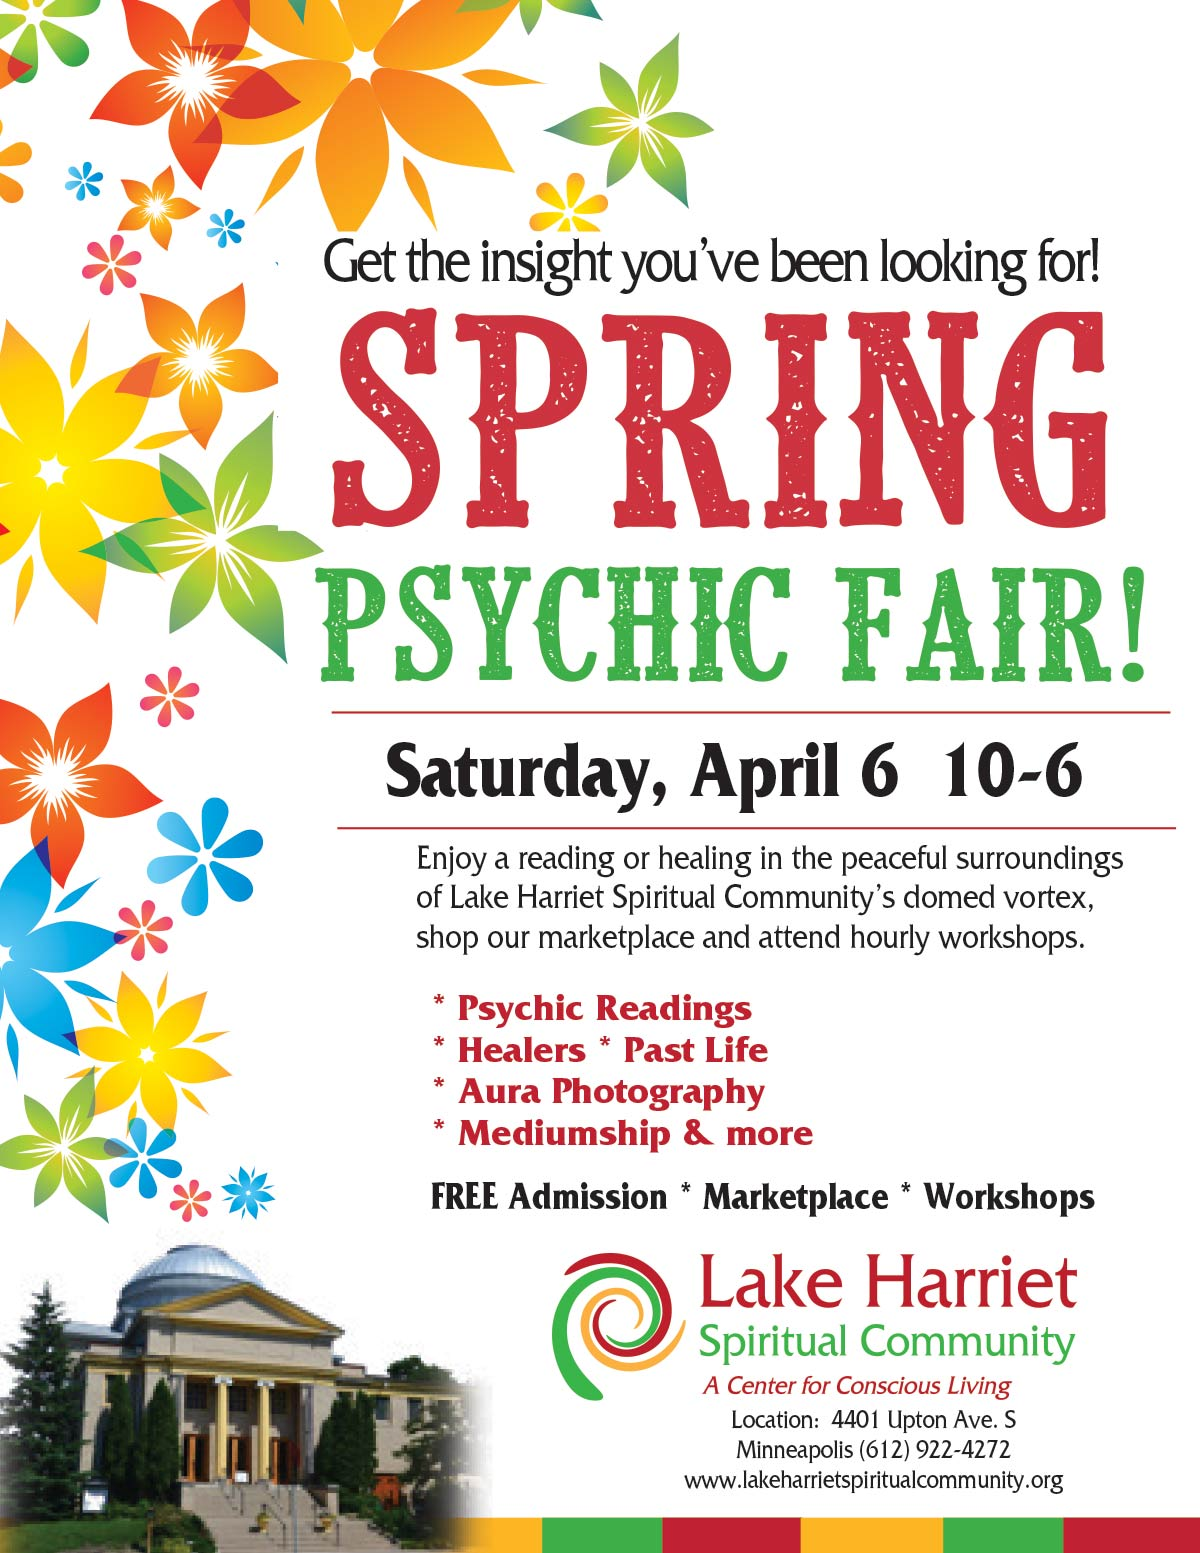 Lake Harriet Spiritual Community Spring Psychic Fair @ Lake Harriet Spiritual Community | Minneapolis | Minnesota | United States